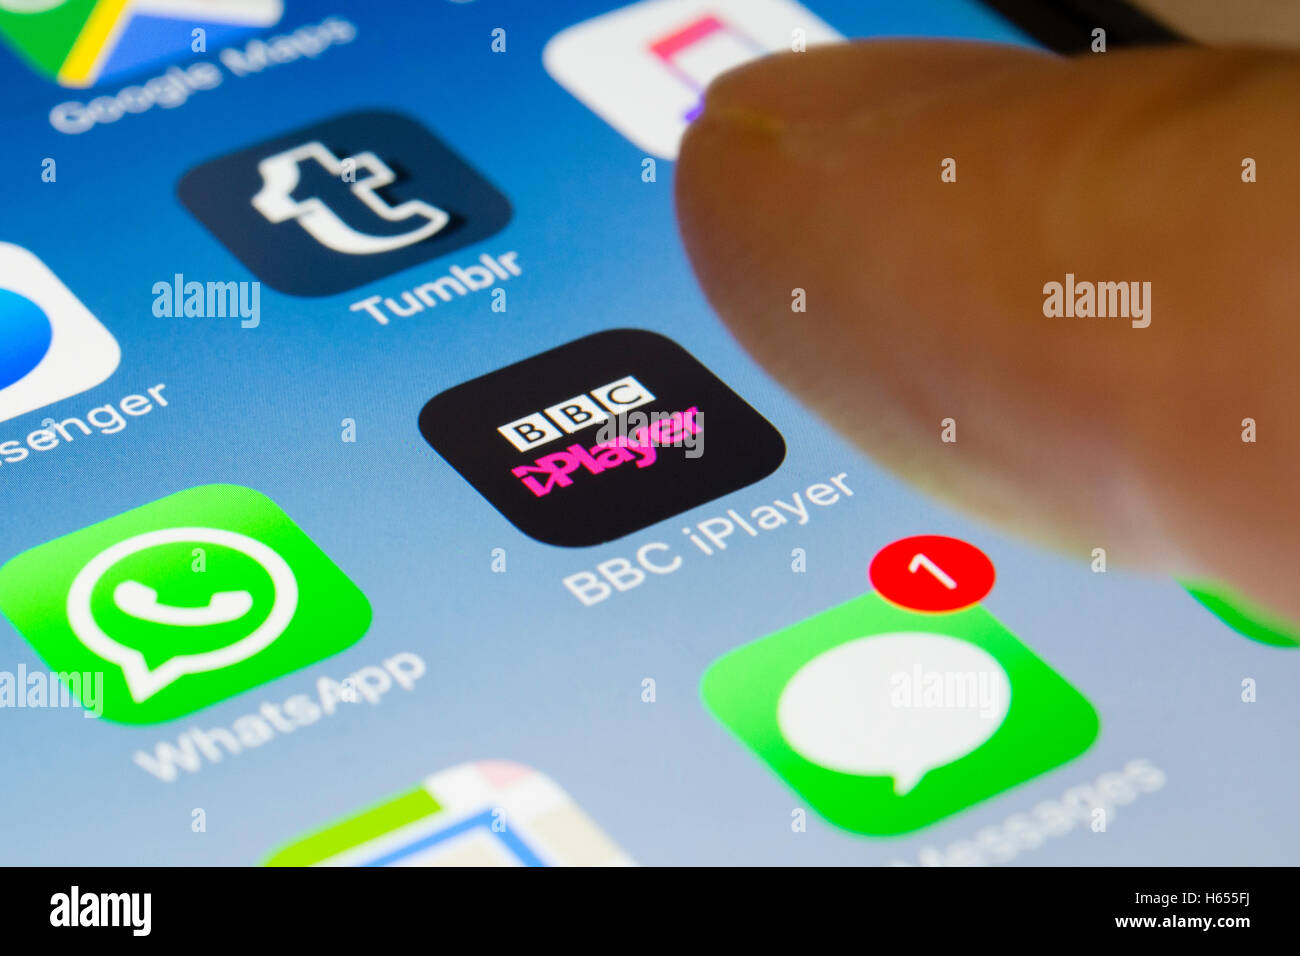 BBC iPlayer tv streaming service app close up on iPhone smart phone screen - Stock Image